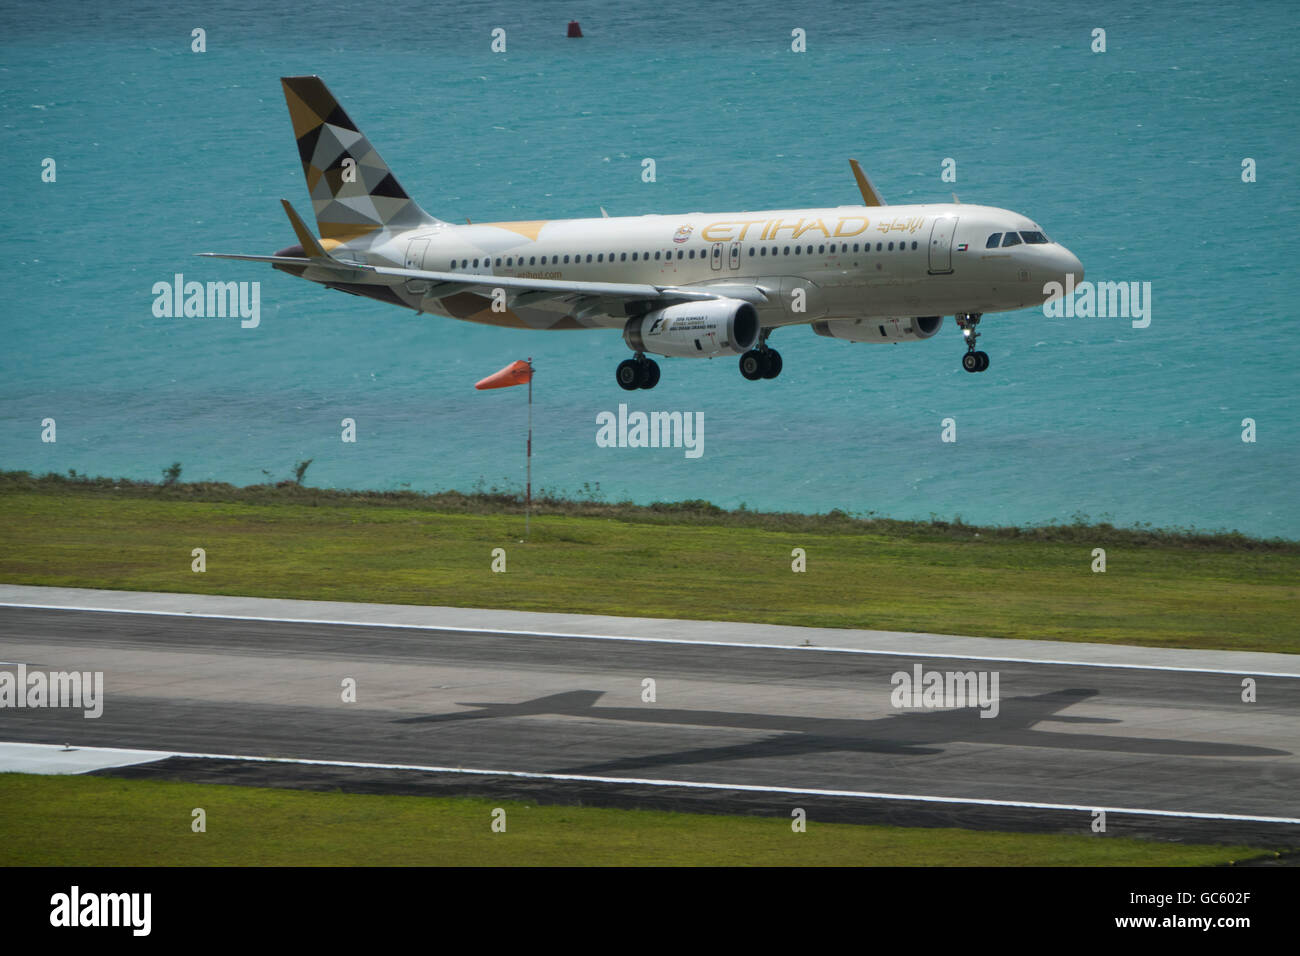 An Etihad Airlines Airbus A320 jet comes in to land at Mahe, Seychelles - Stock Image